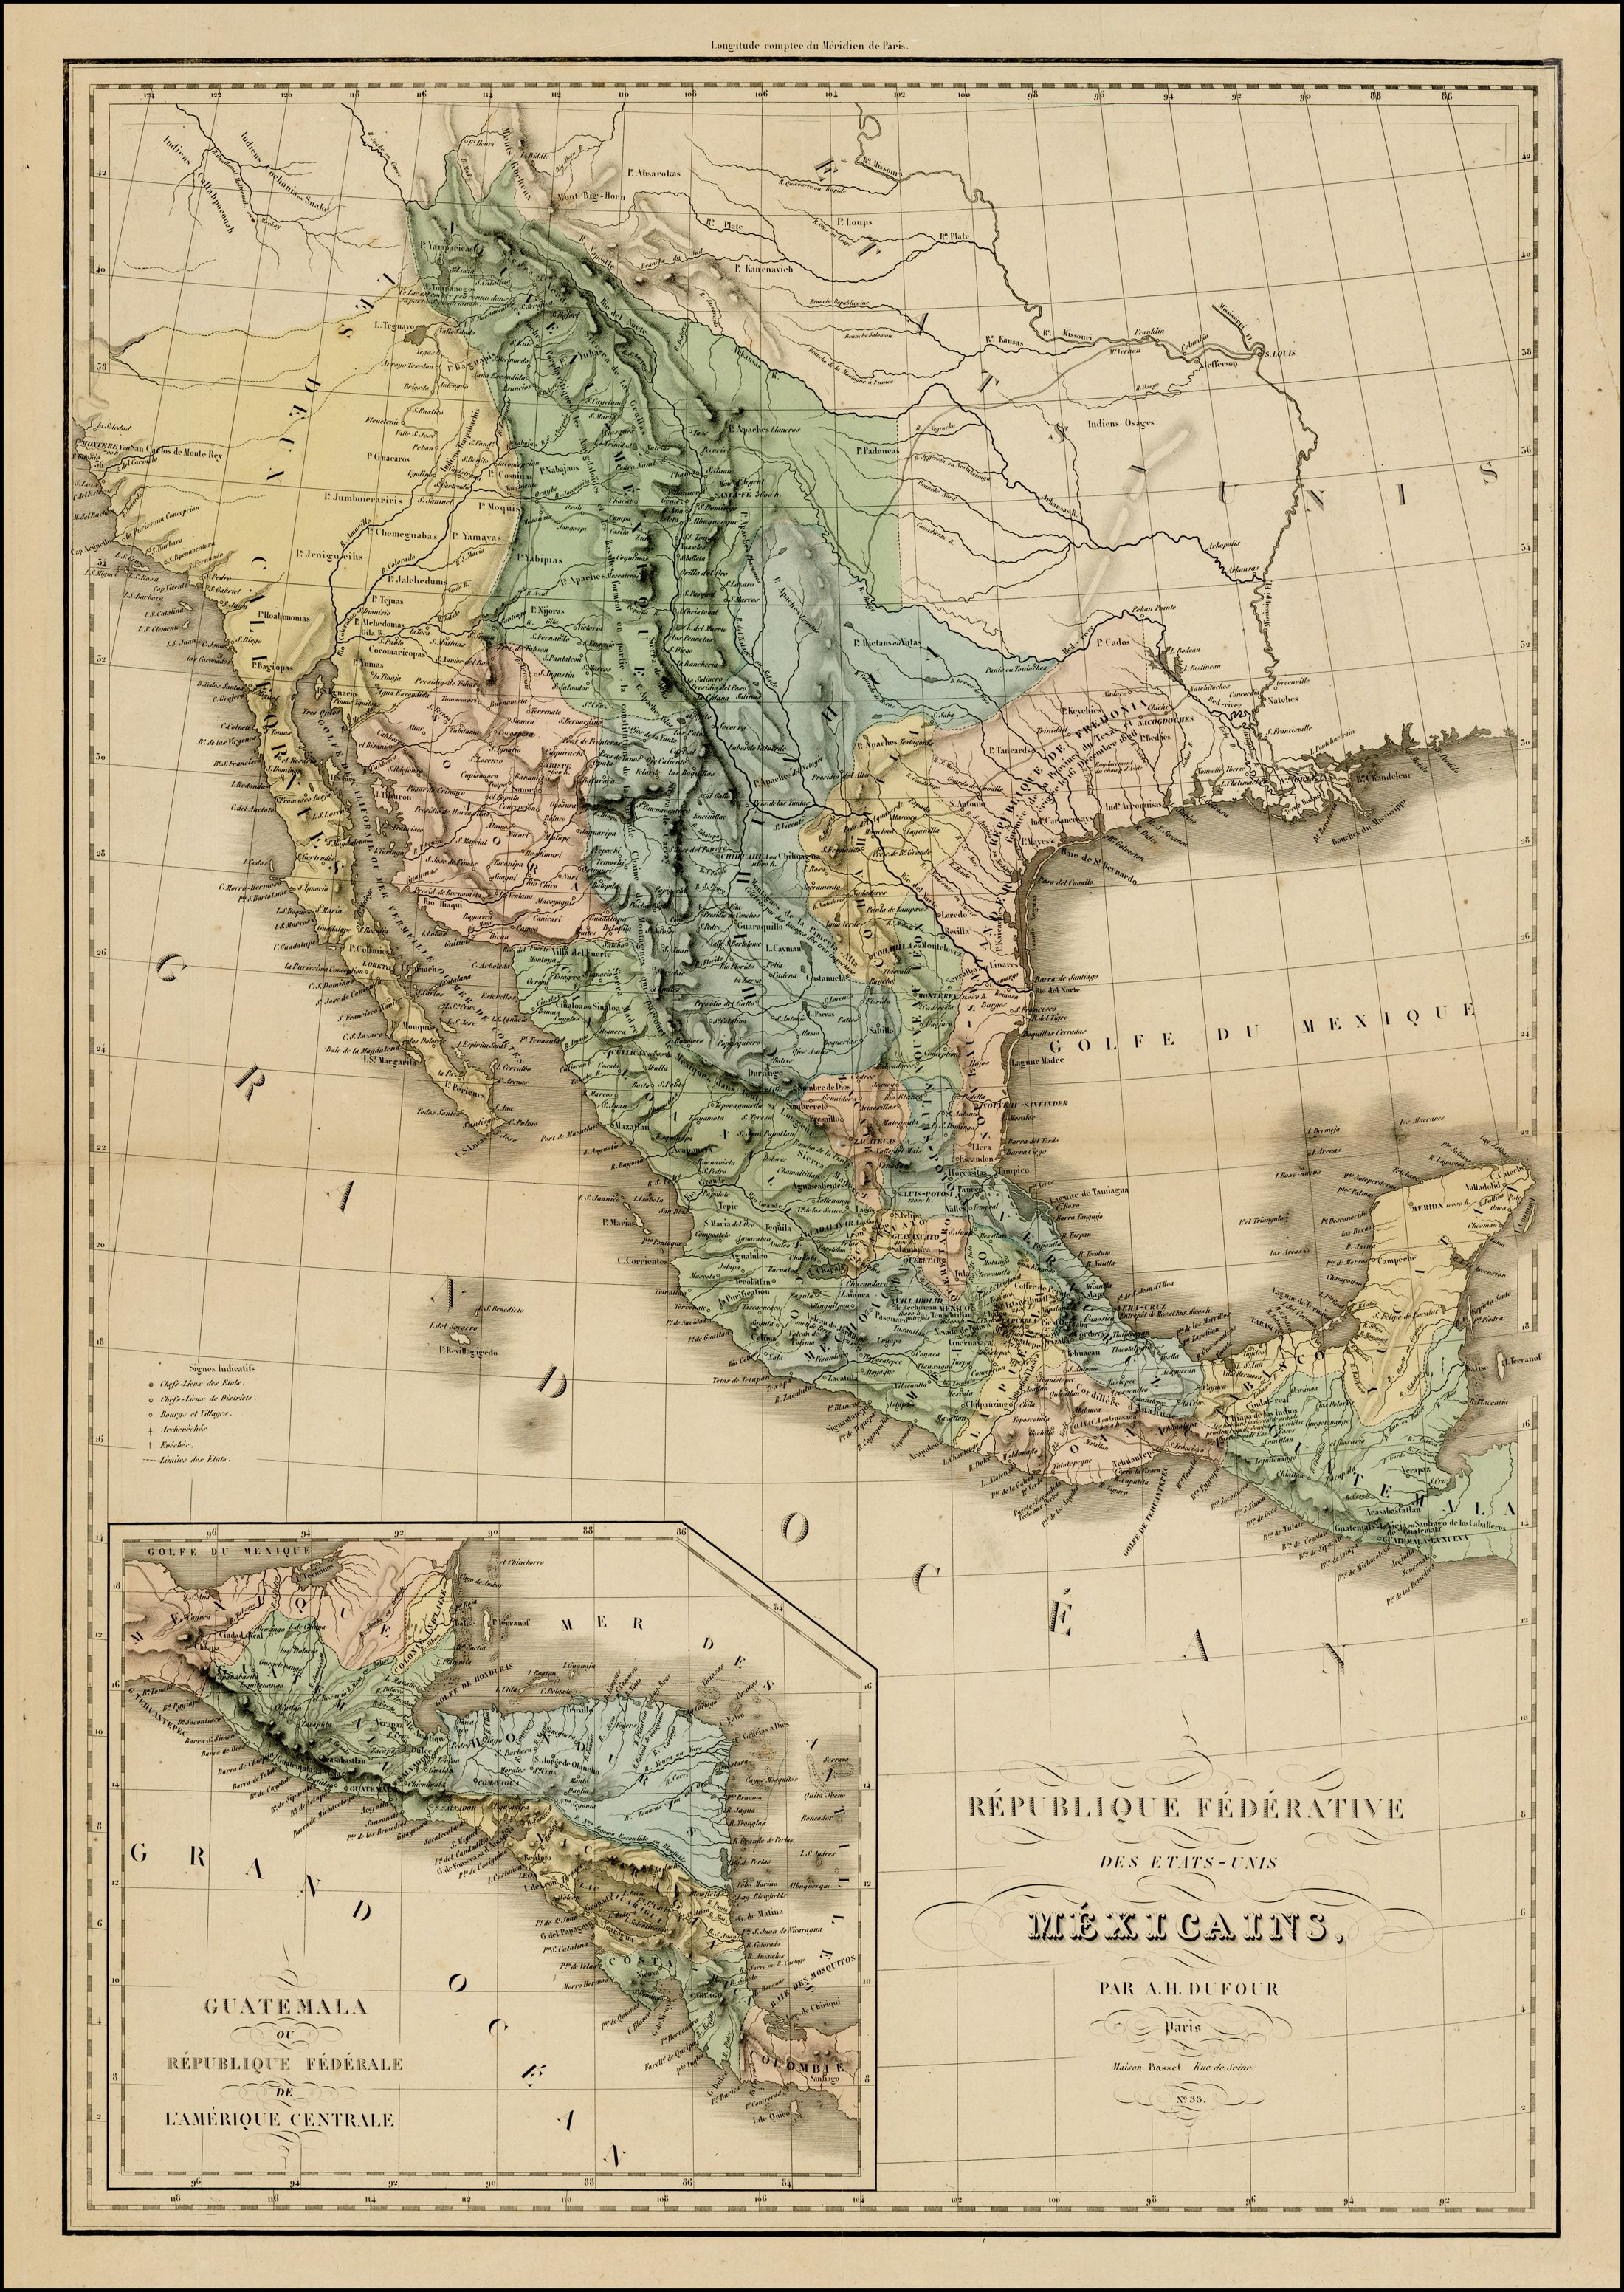 Mexico and the Republic of Fredonia Retronaut